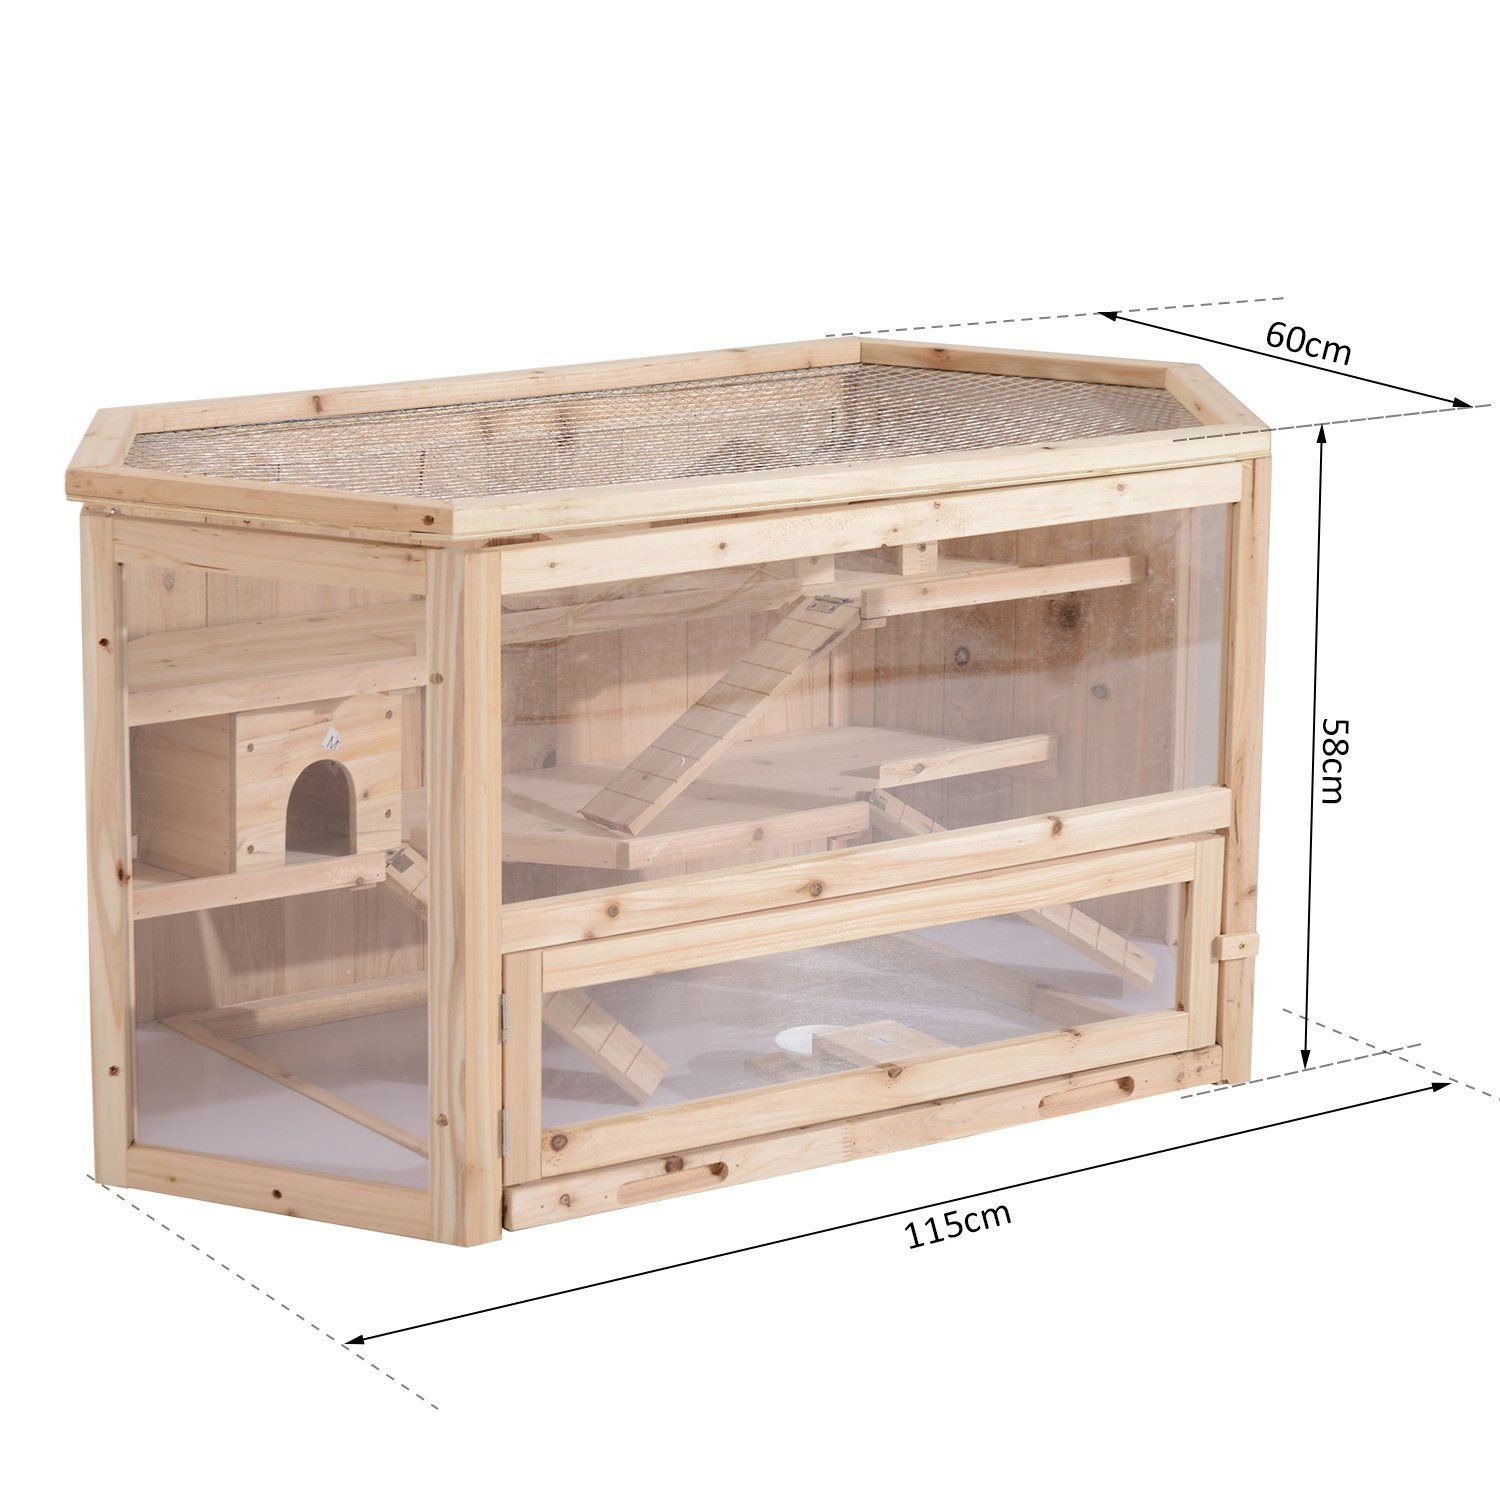 Pawhut Large Wooden Hamster Cage Rodent Mouse Pet Small Animal Kit Hut Box Double Layers Easy Clean Amazon Co Uk Small Pets Syrian Hamster Cages Hamster Cage